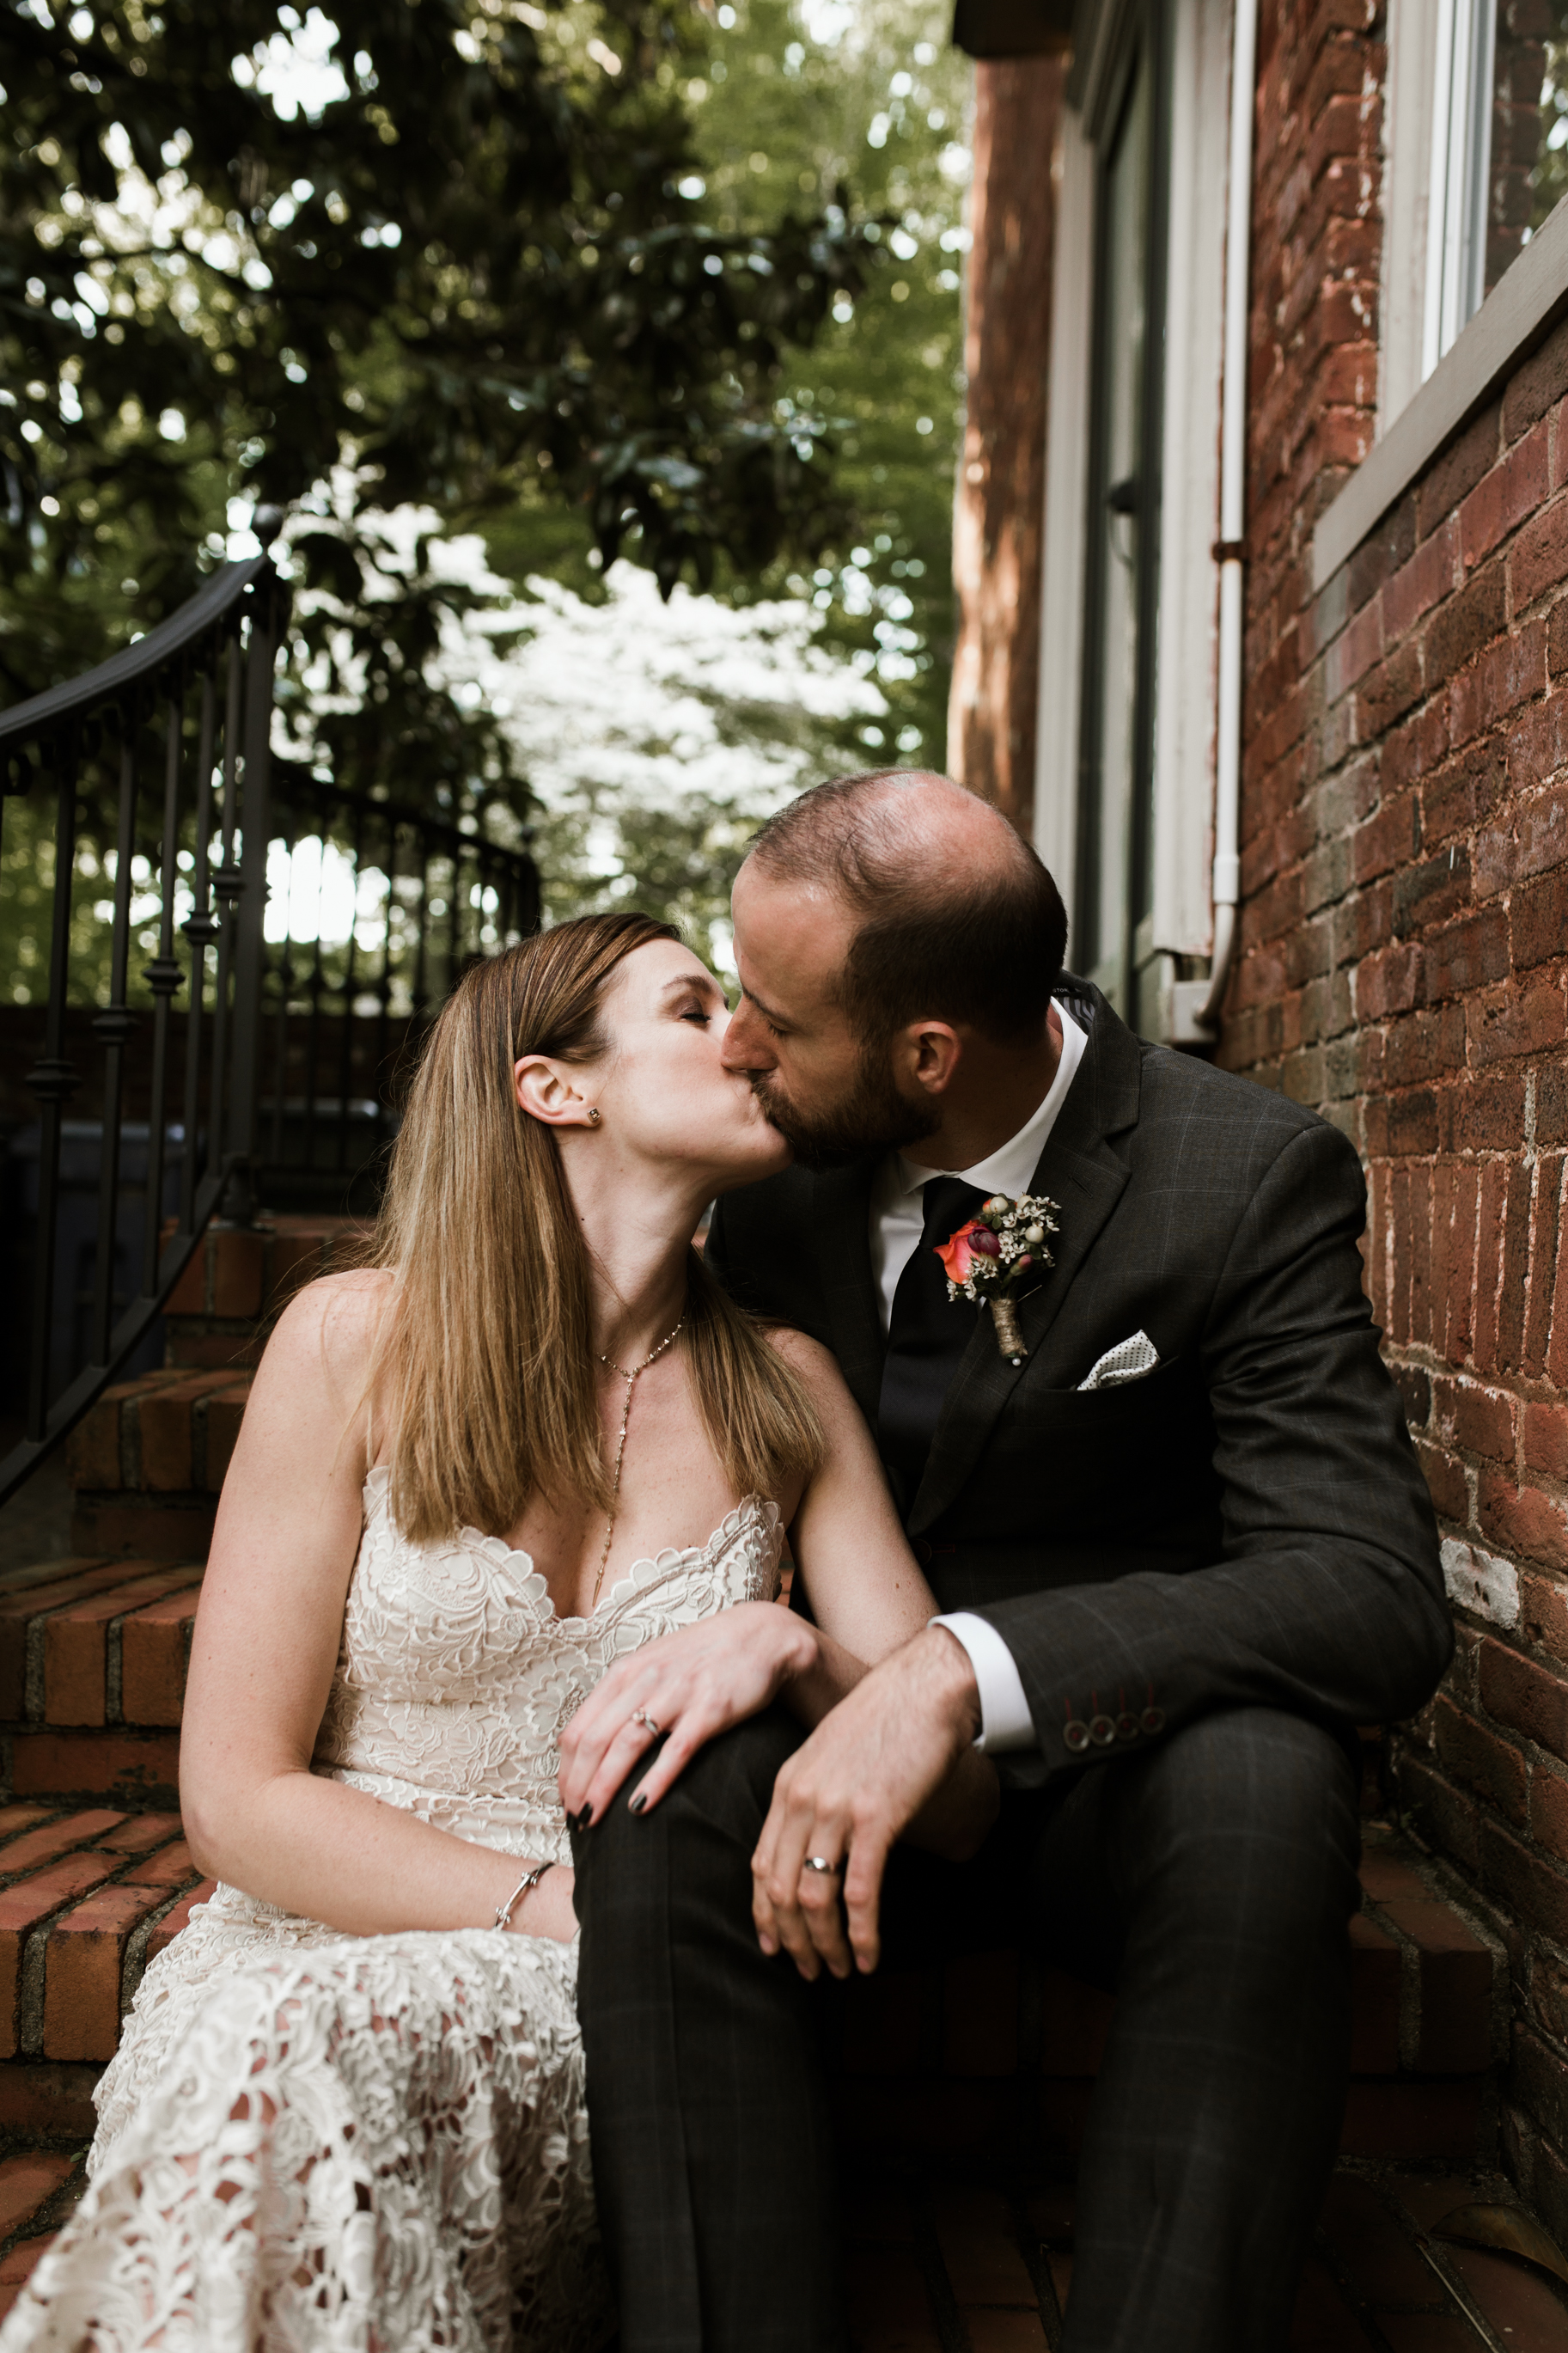 Louisville Courthouse Wedding Louisville Wedding Photographer 2018 Crystal Ludwick Photo Louisville Wedding Photographer Kentucky Wedding Photographer (74 of 76).jpg